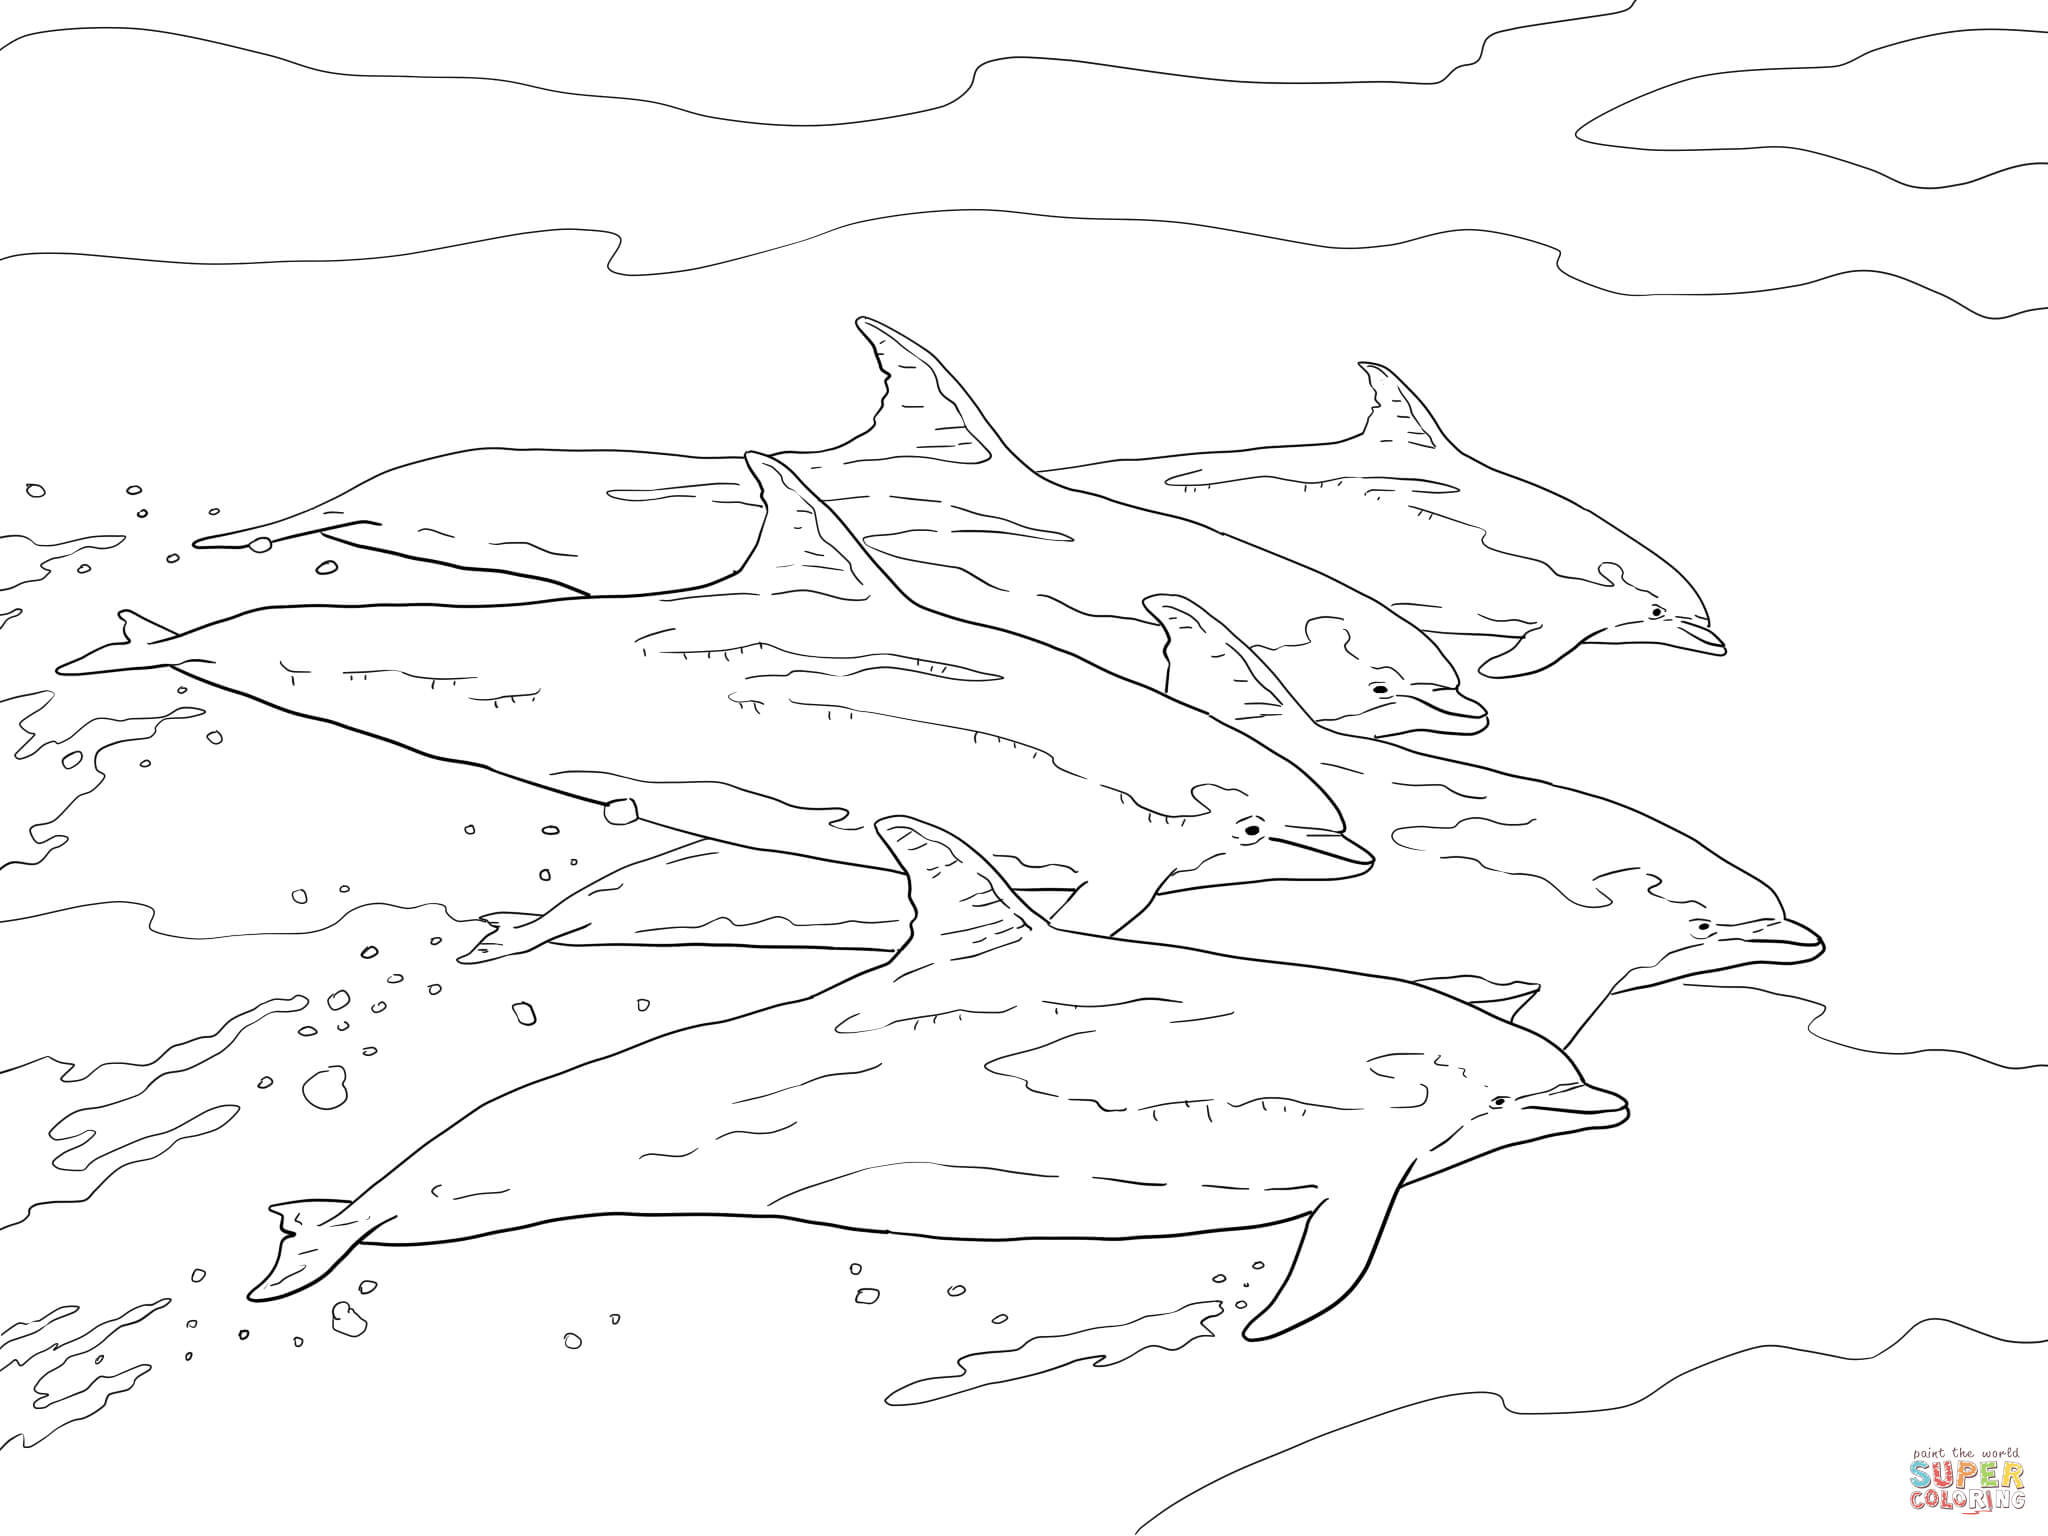 Bottlenose Dolphins School Coloring Page